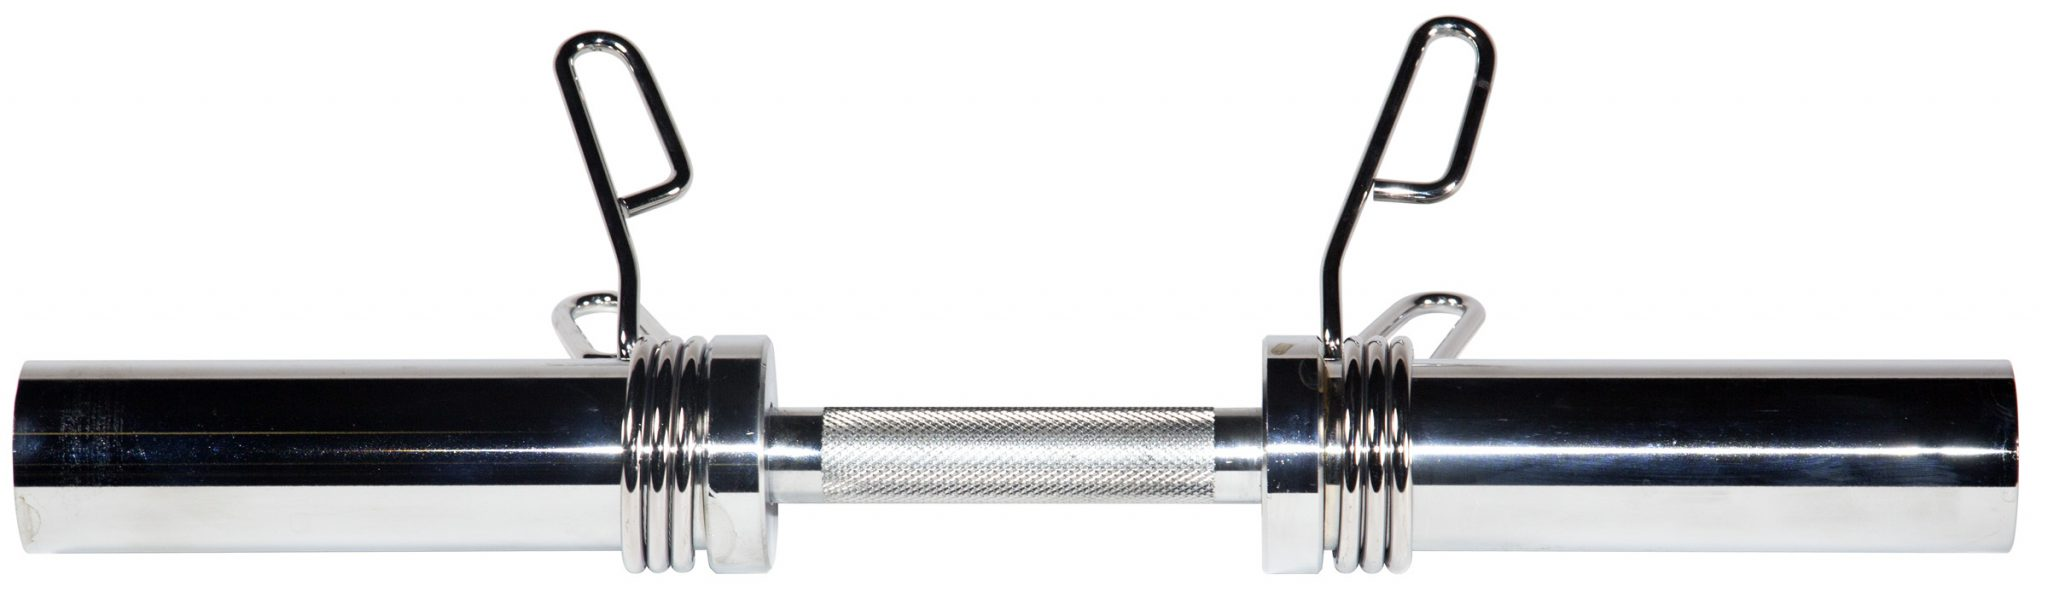 "20"" Olympic Dumbbell Handle w/ Spring Clip Collars"